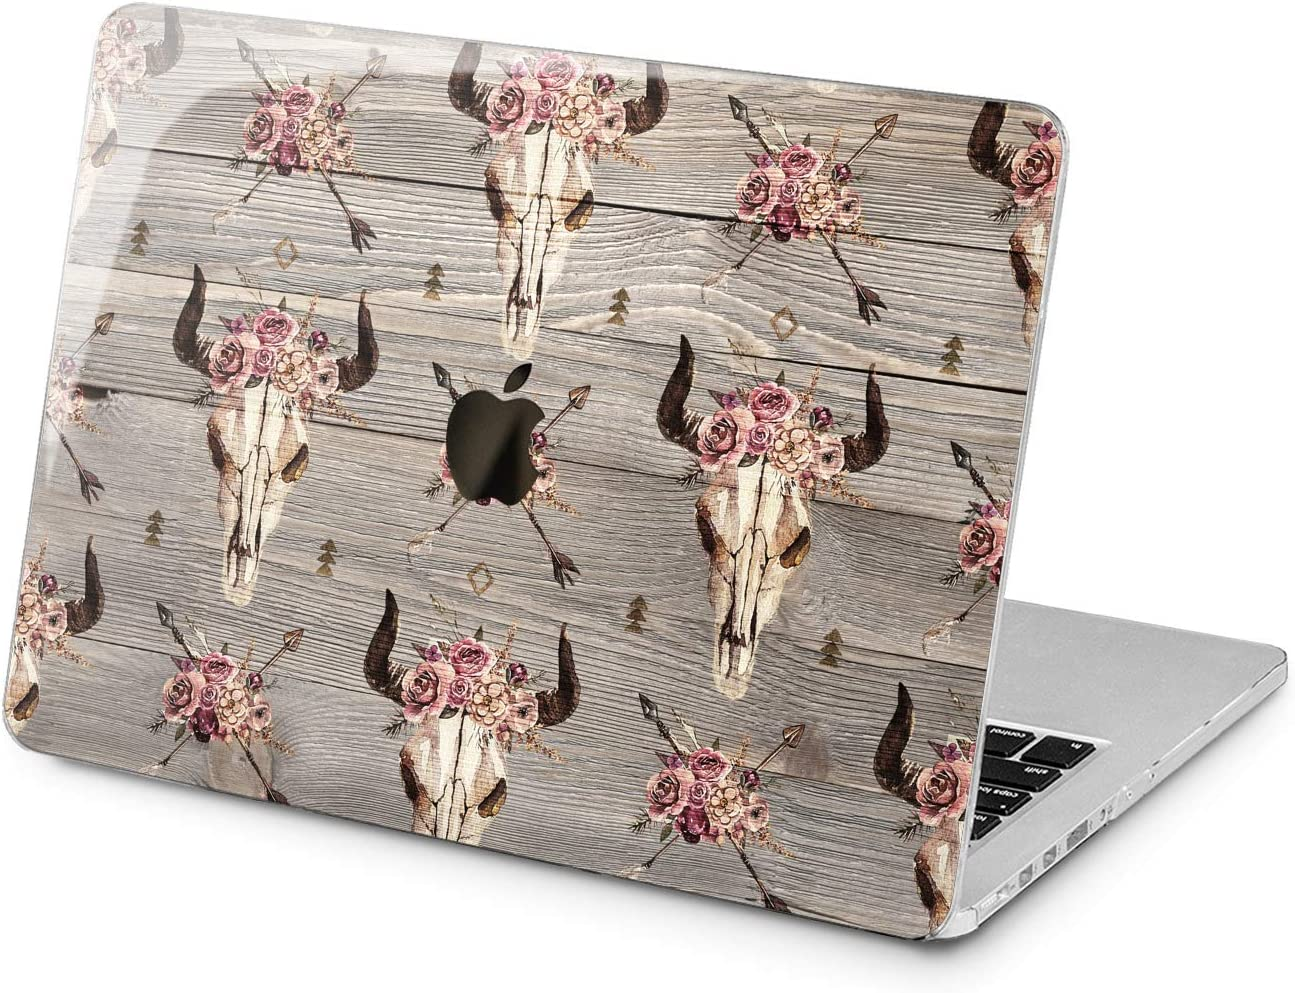 "Cavka Hard Shell Case for Apple MacBook Pro 13"" 2019 15"" 2018 Air 13"" 2020 Retina 2015 Mac 11"" Mac 12"" Vintage Skull Wood Plastic Boho Design Floral Laptop Pattern Protective Bohemian Cover Print"